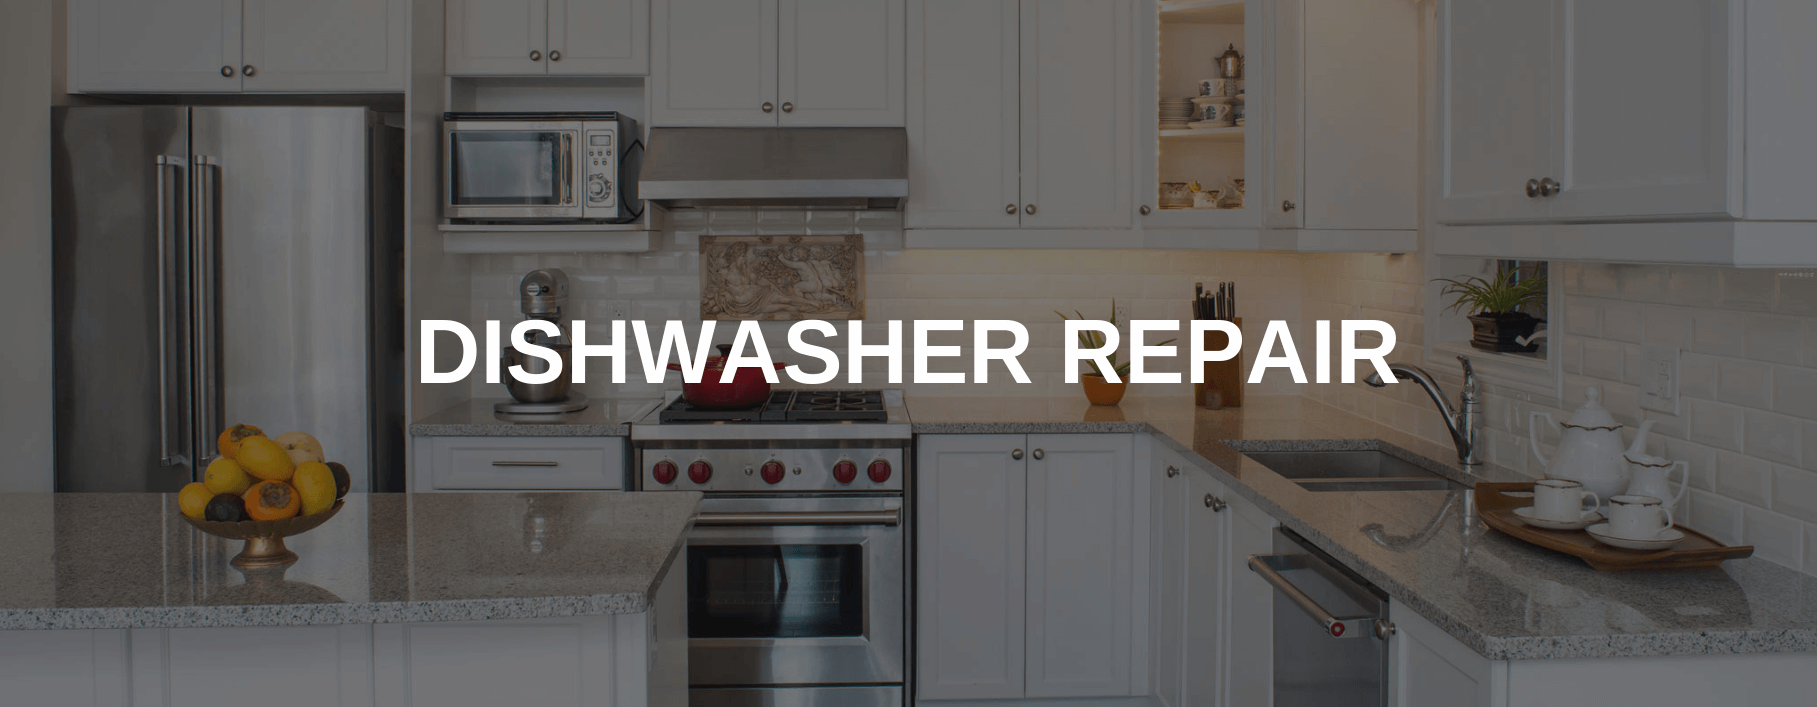 dishwasher repair torrington